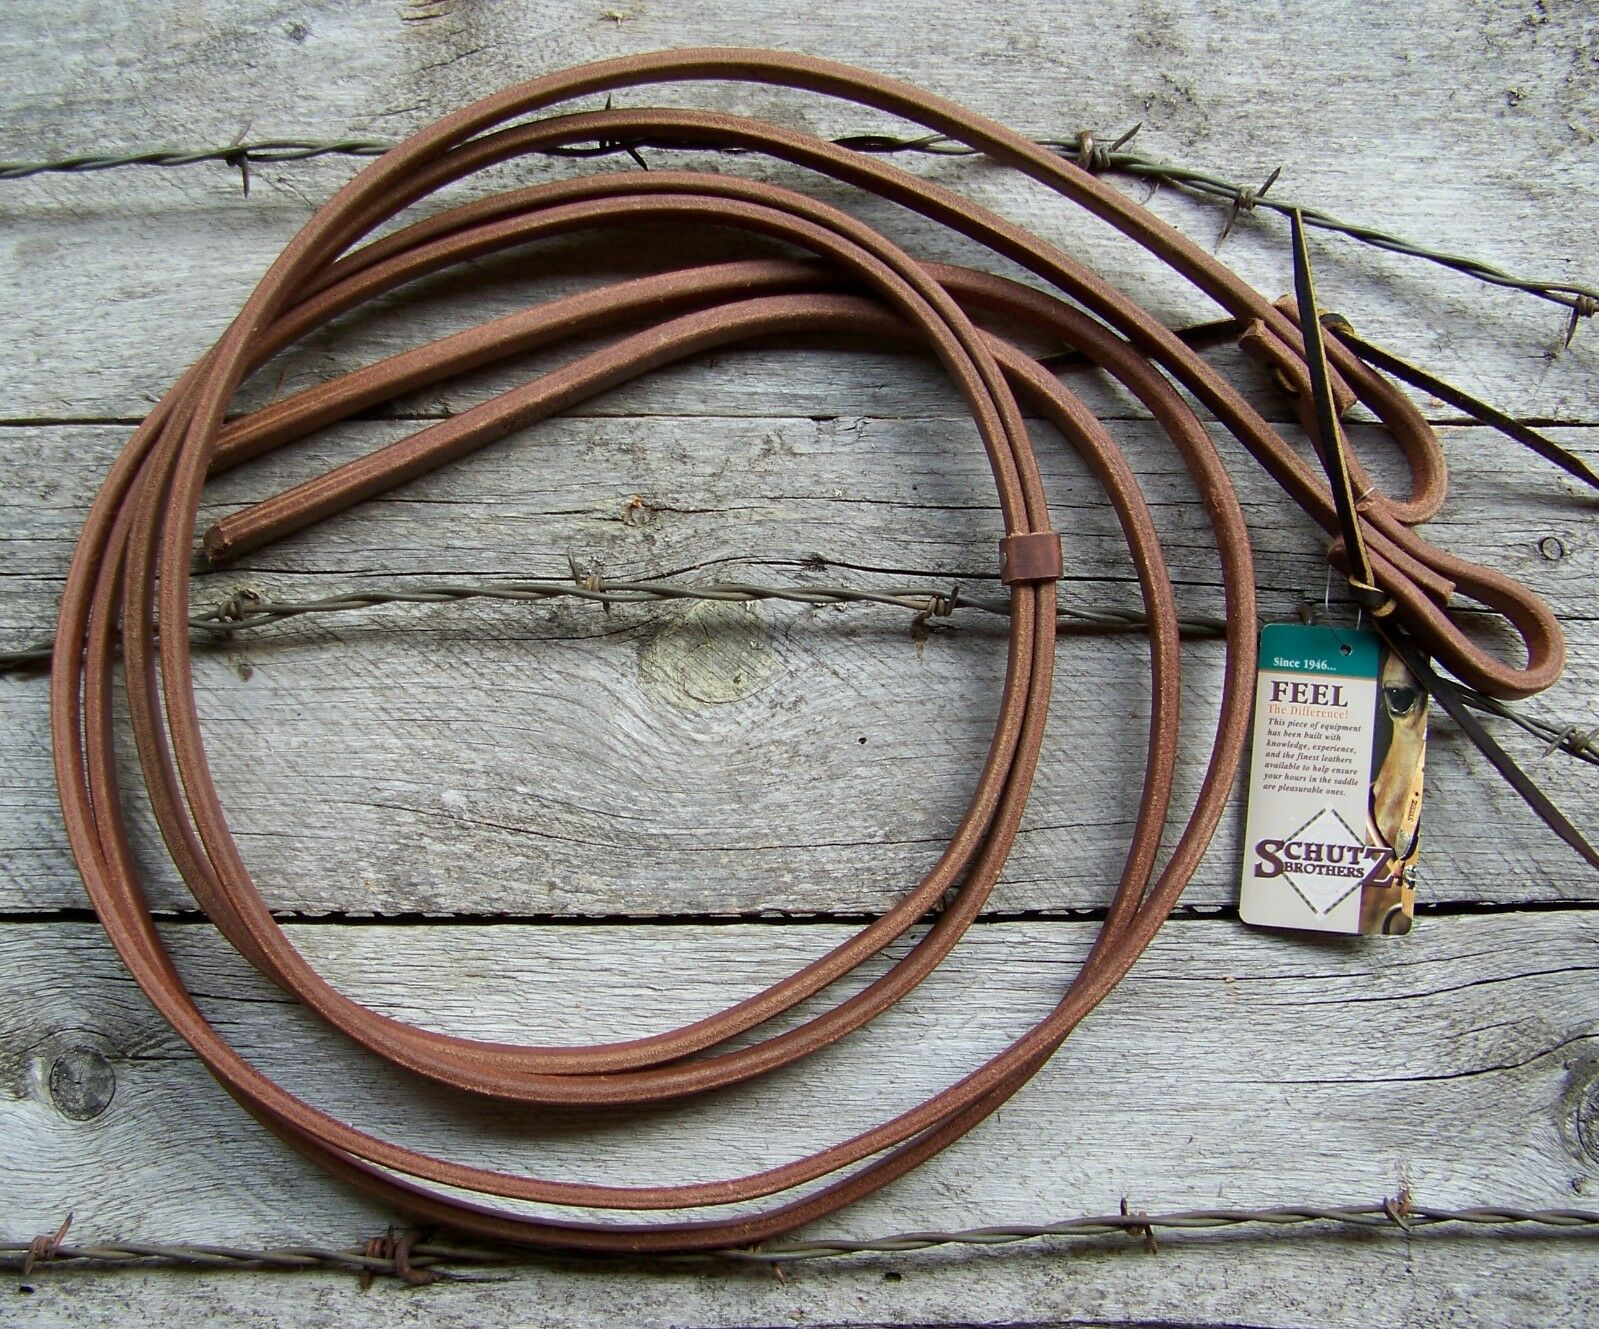 Reins - Oiled Harness Leather Water Loop (1 2 Inch) by Schutz Bredhers